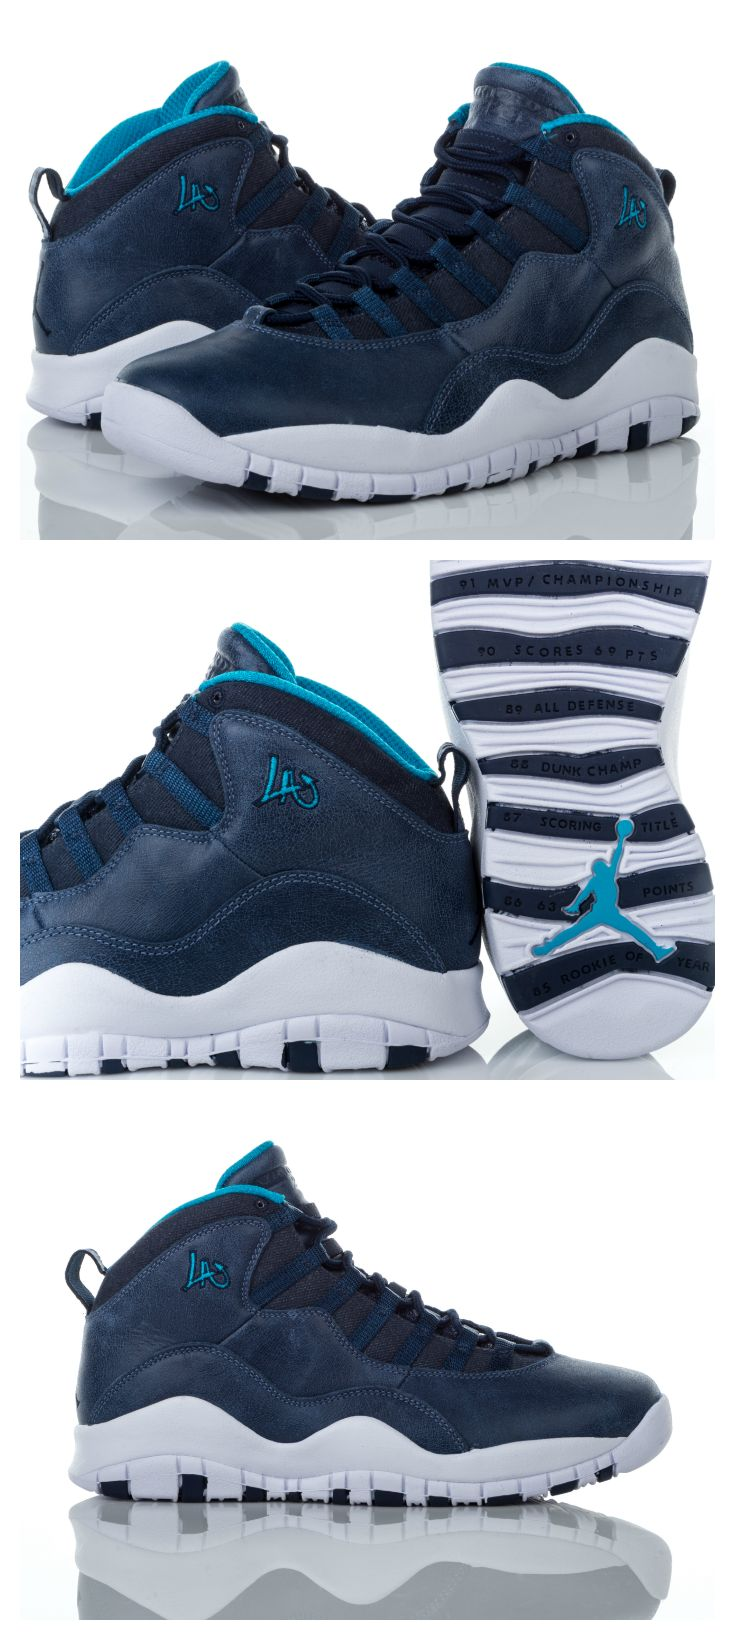 Look fly with this shoe inspired by the City of Angels. Get the Jordan  Retro 10 LA now.